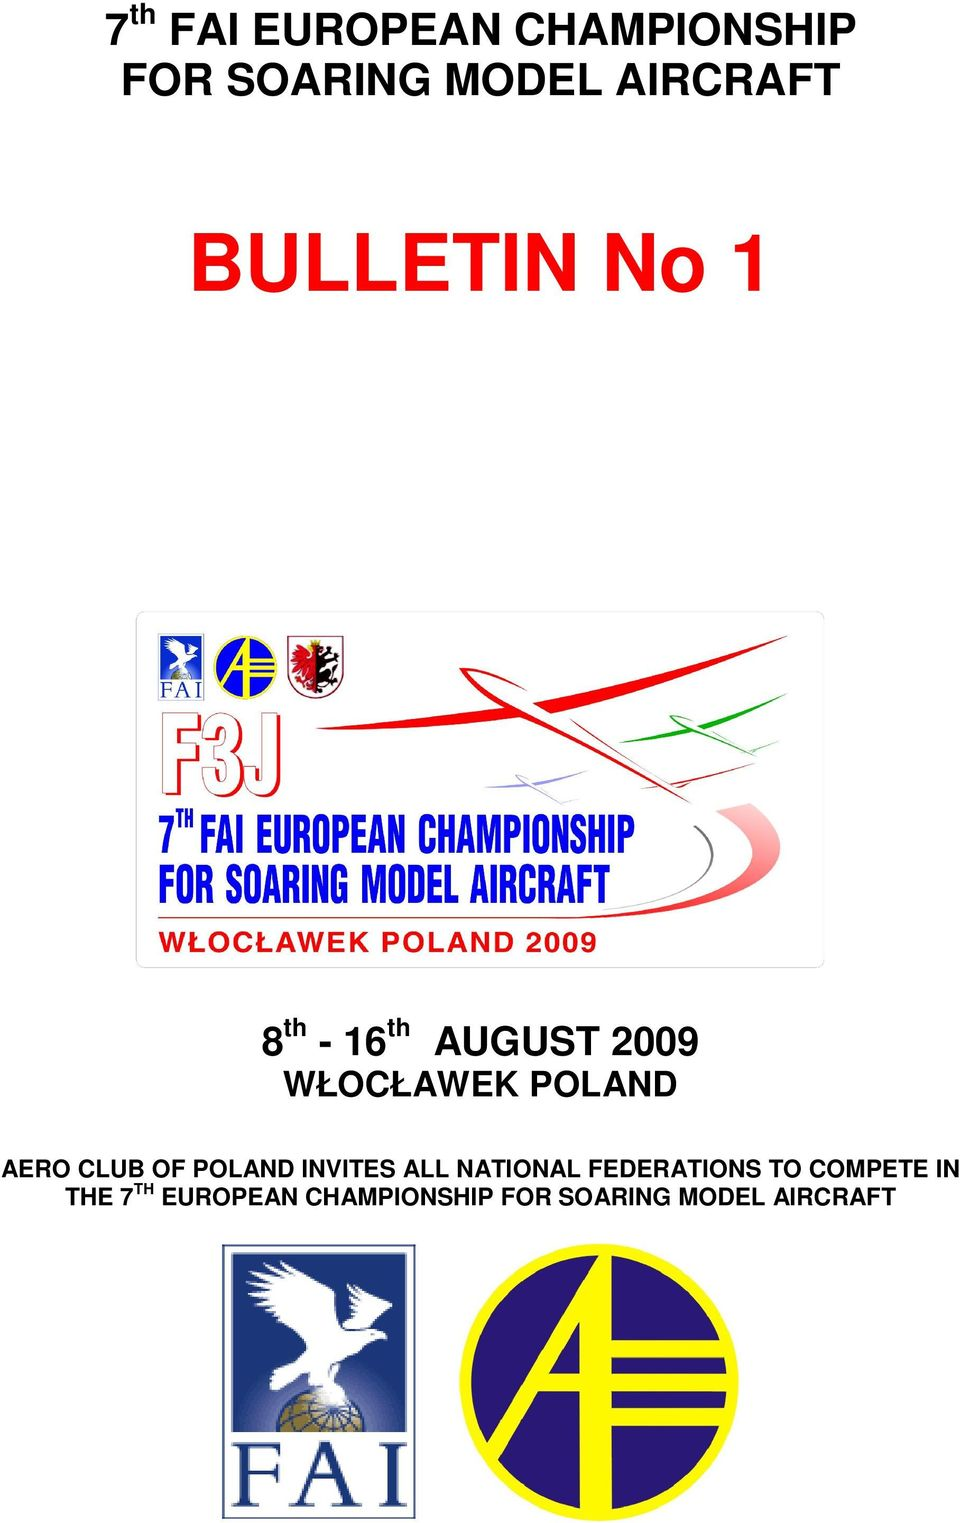 AERO CLUB OF POLAND INVITES ALL NATIONAL FEDERATIONS TO